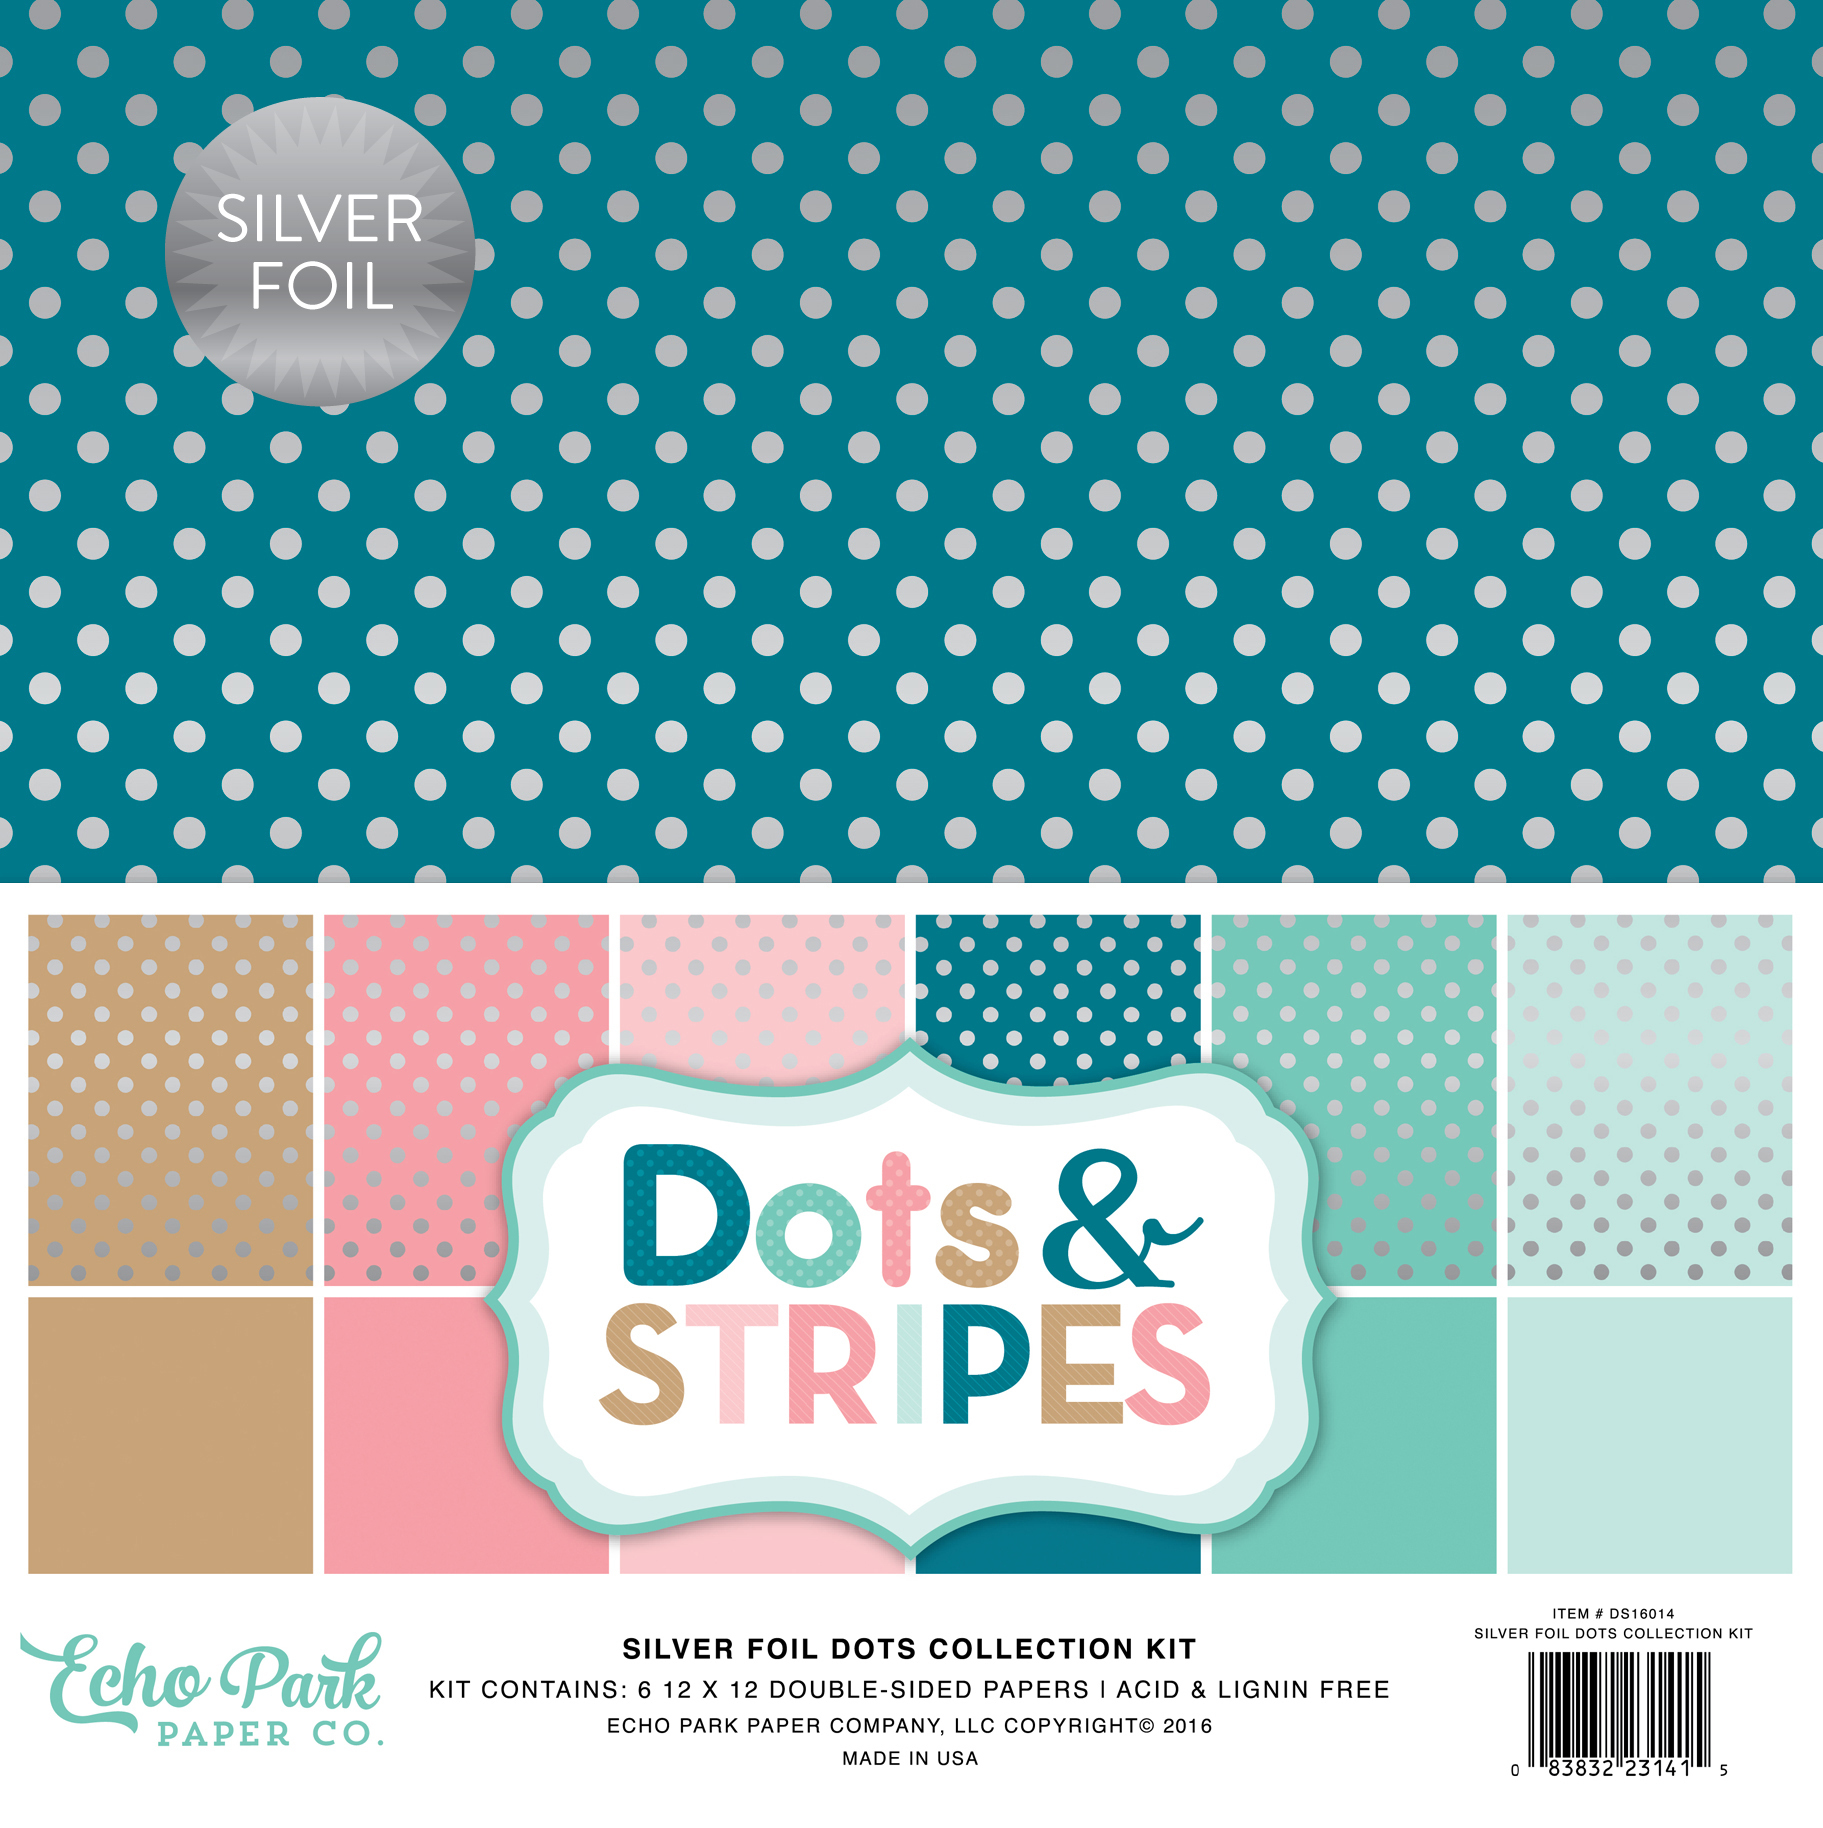 Dots & Stripes Silver Foil Dots